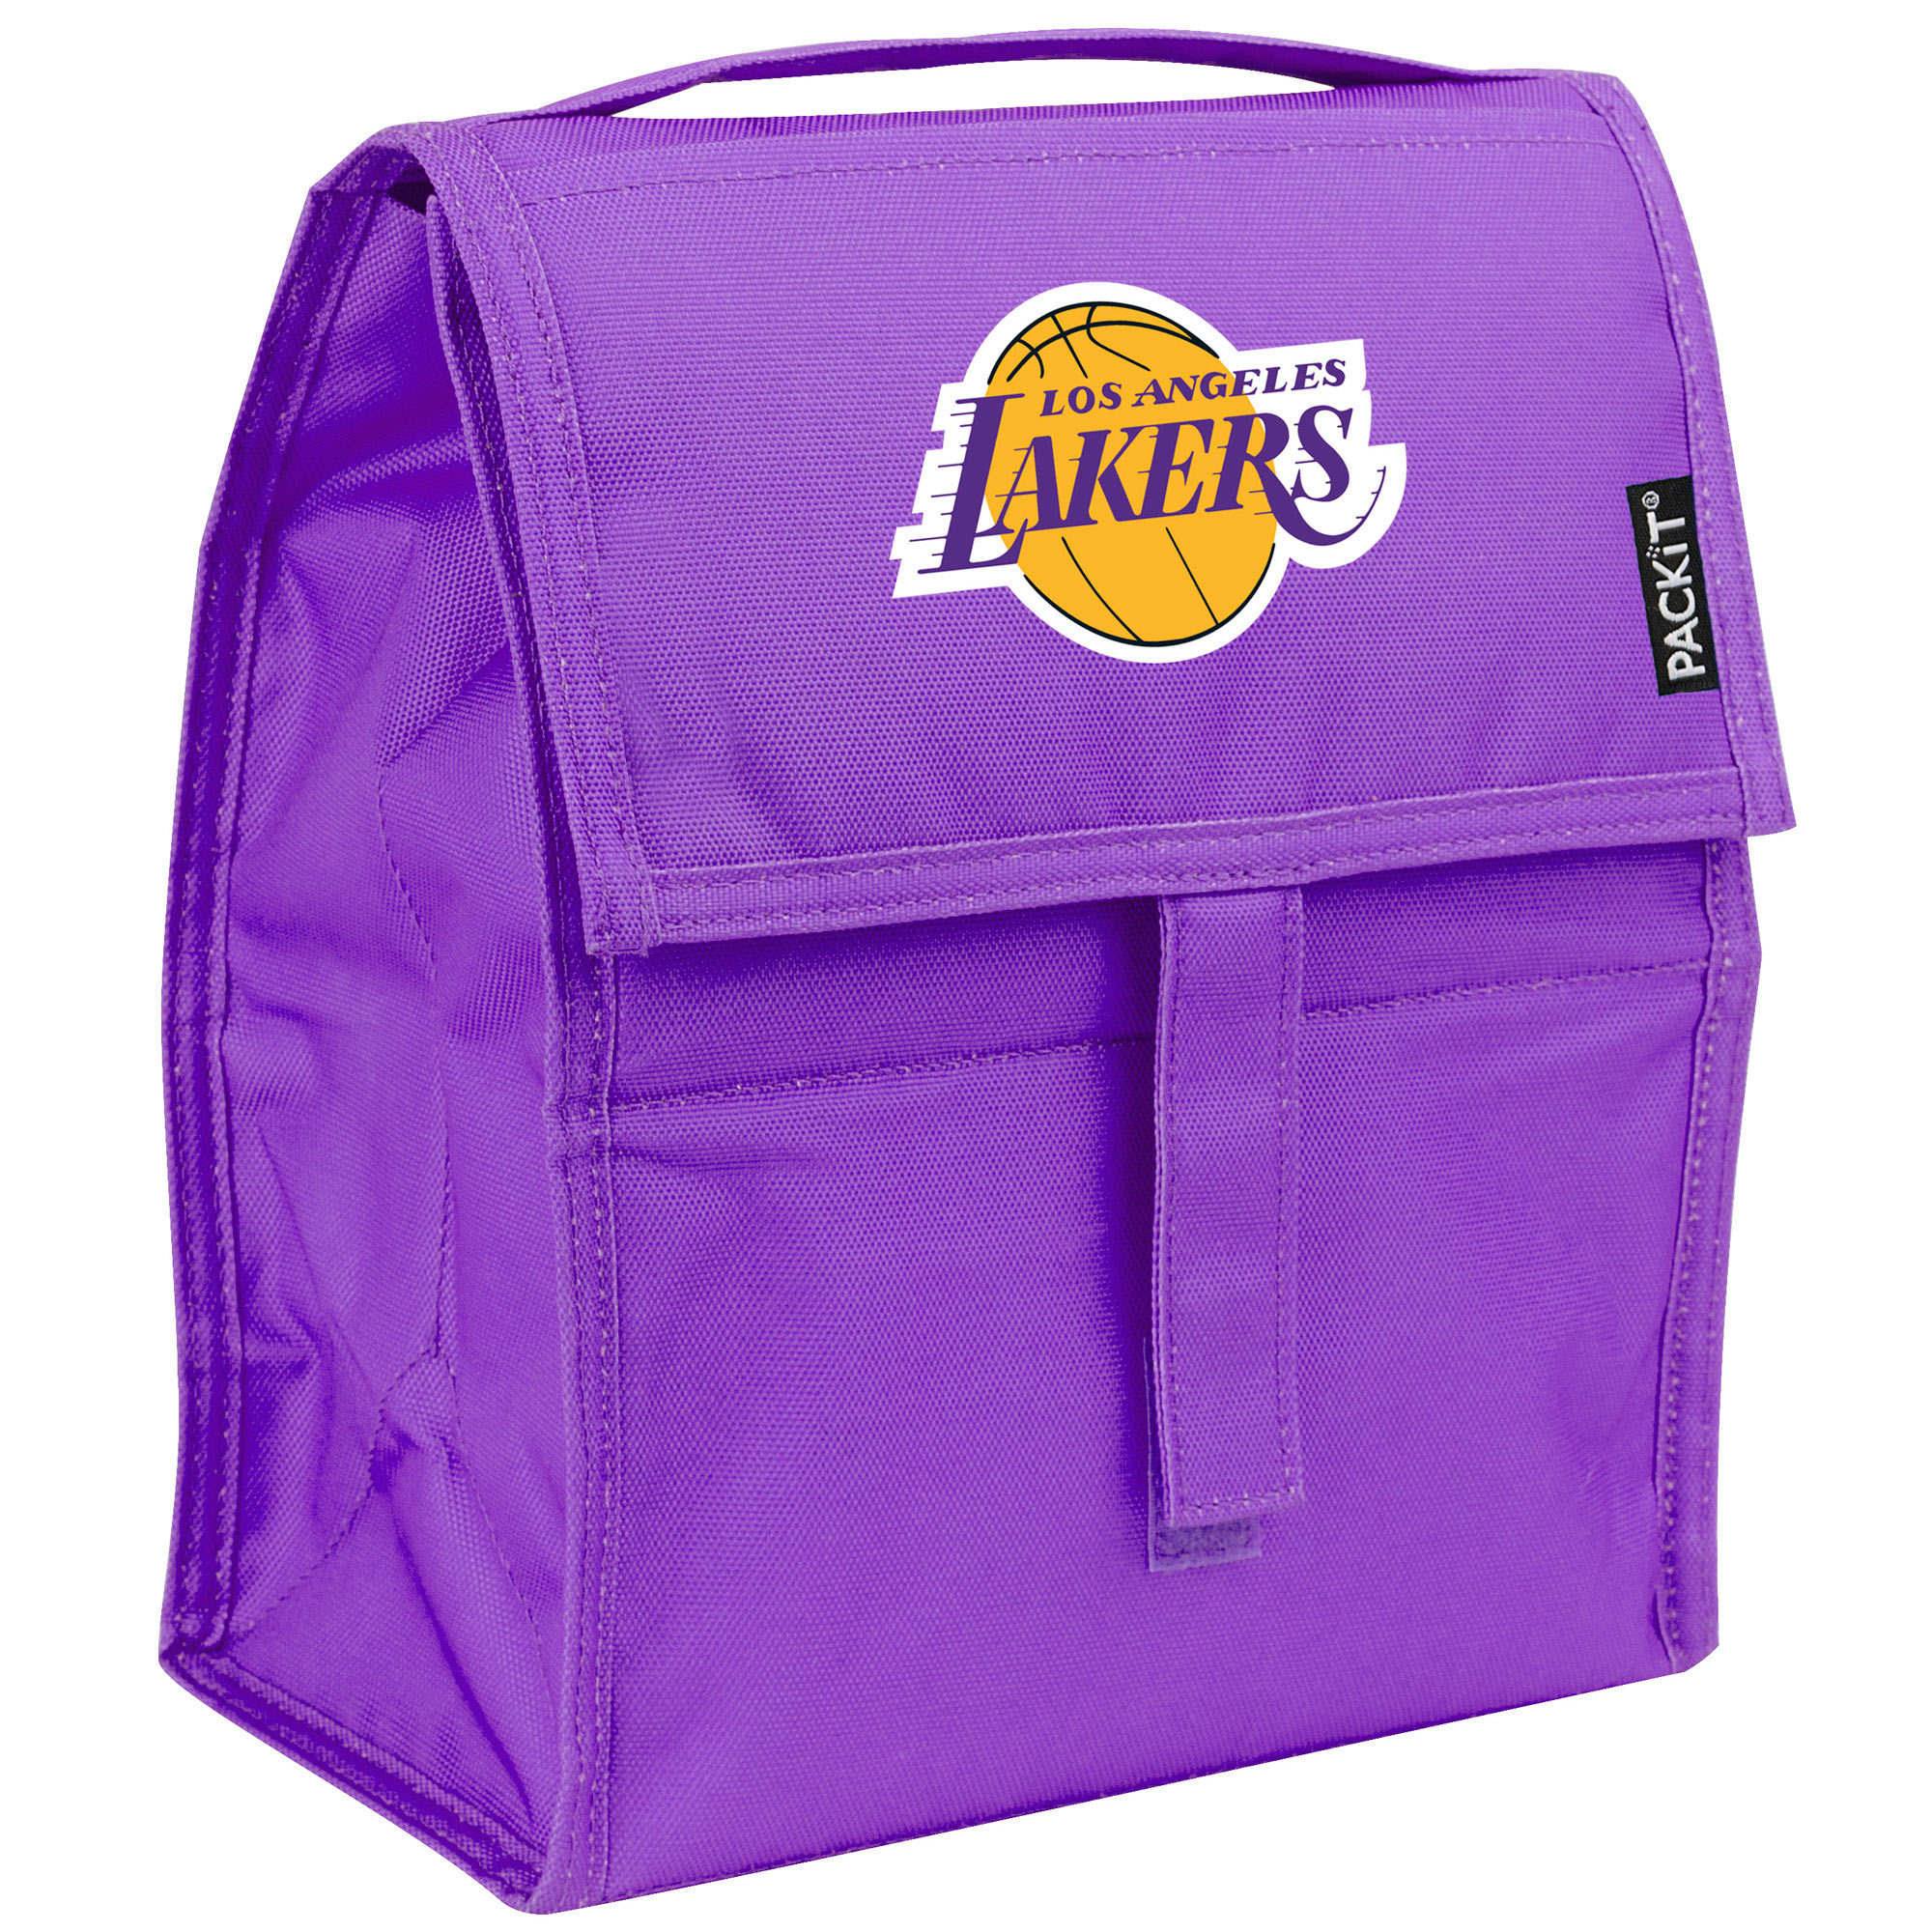 Los Angeles Lakers PackIt Lunch Box - No Size